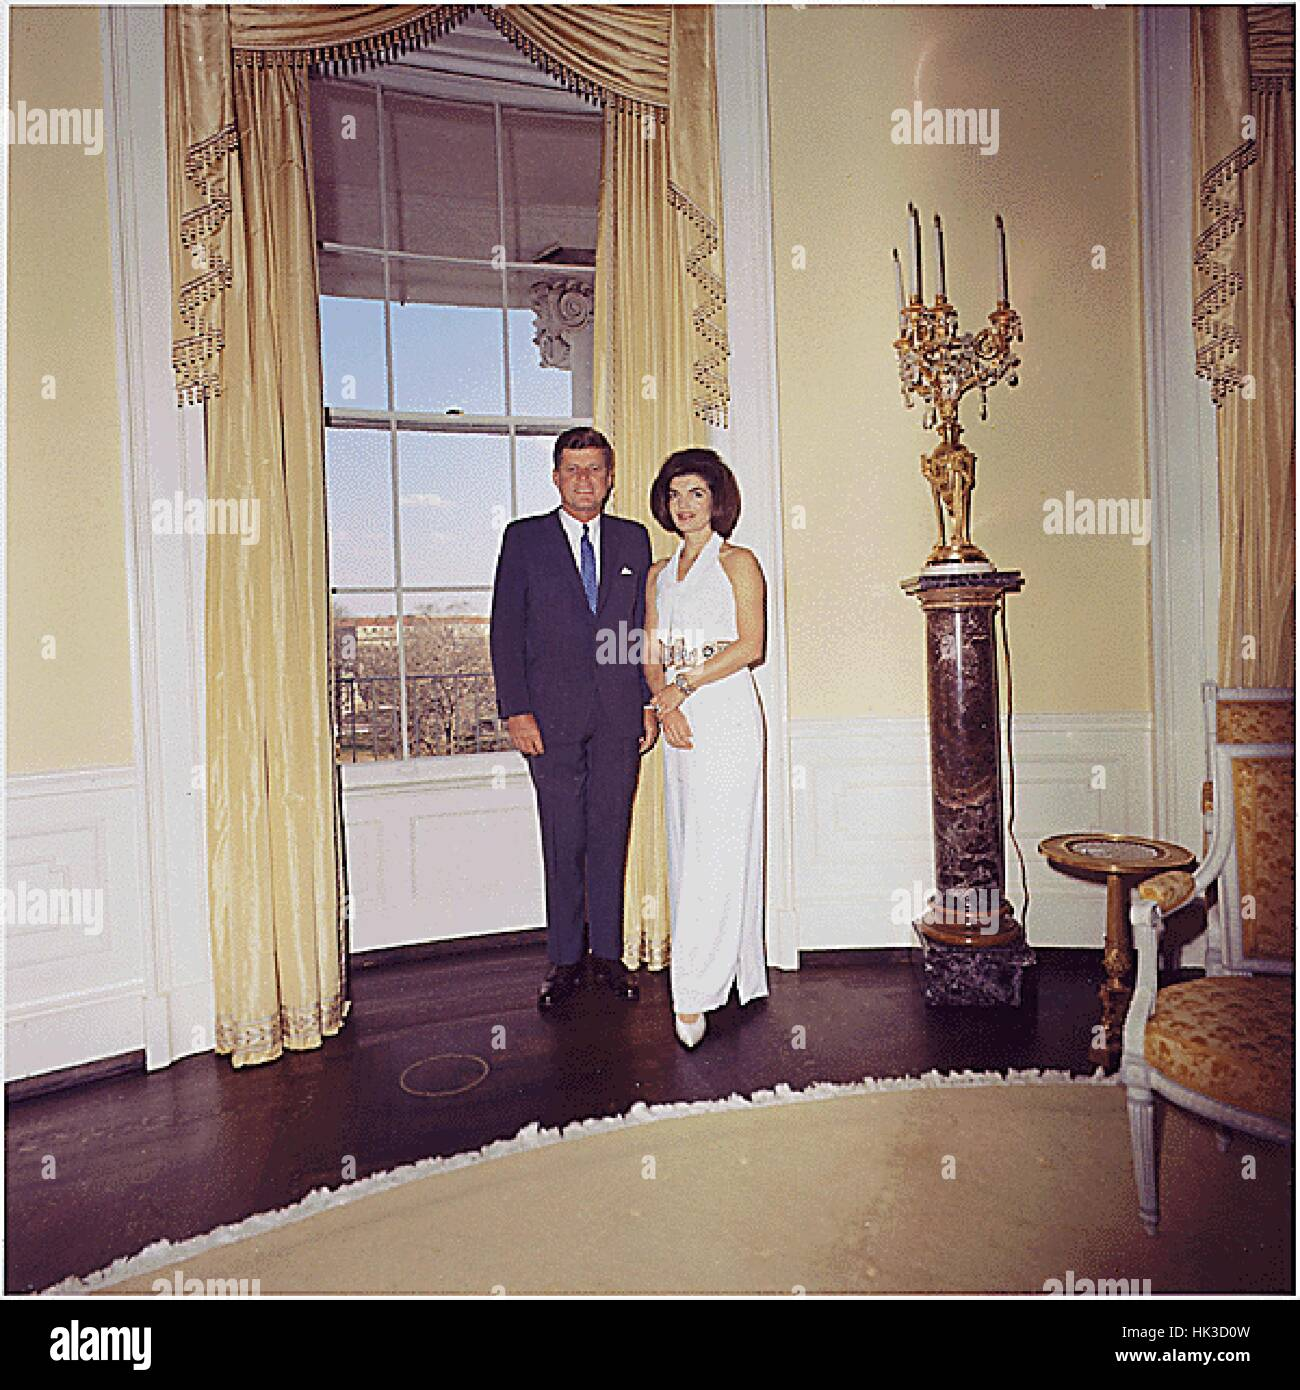 Portrait Photograph of U.S. President John F. Kennedy and First Lady Jacqueline Bouvier Kennedy in the Yellow Oval - Stock Image